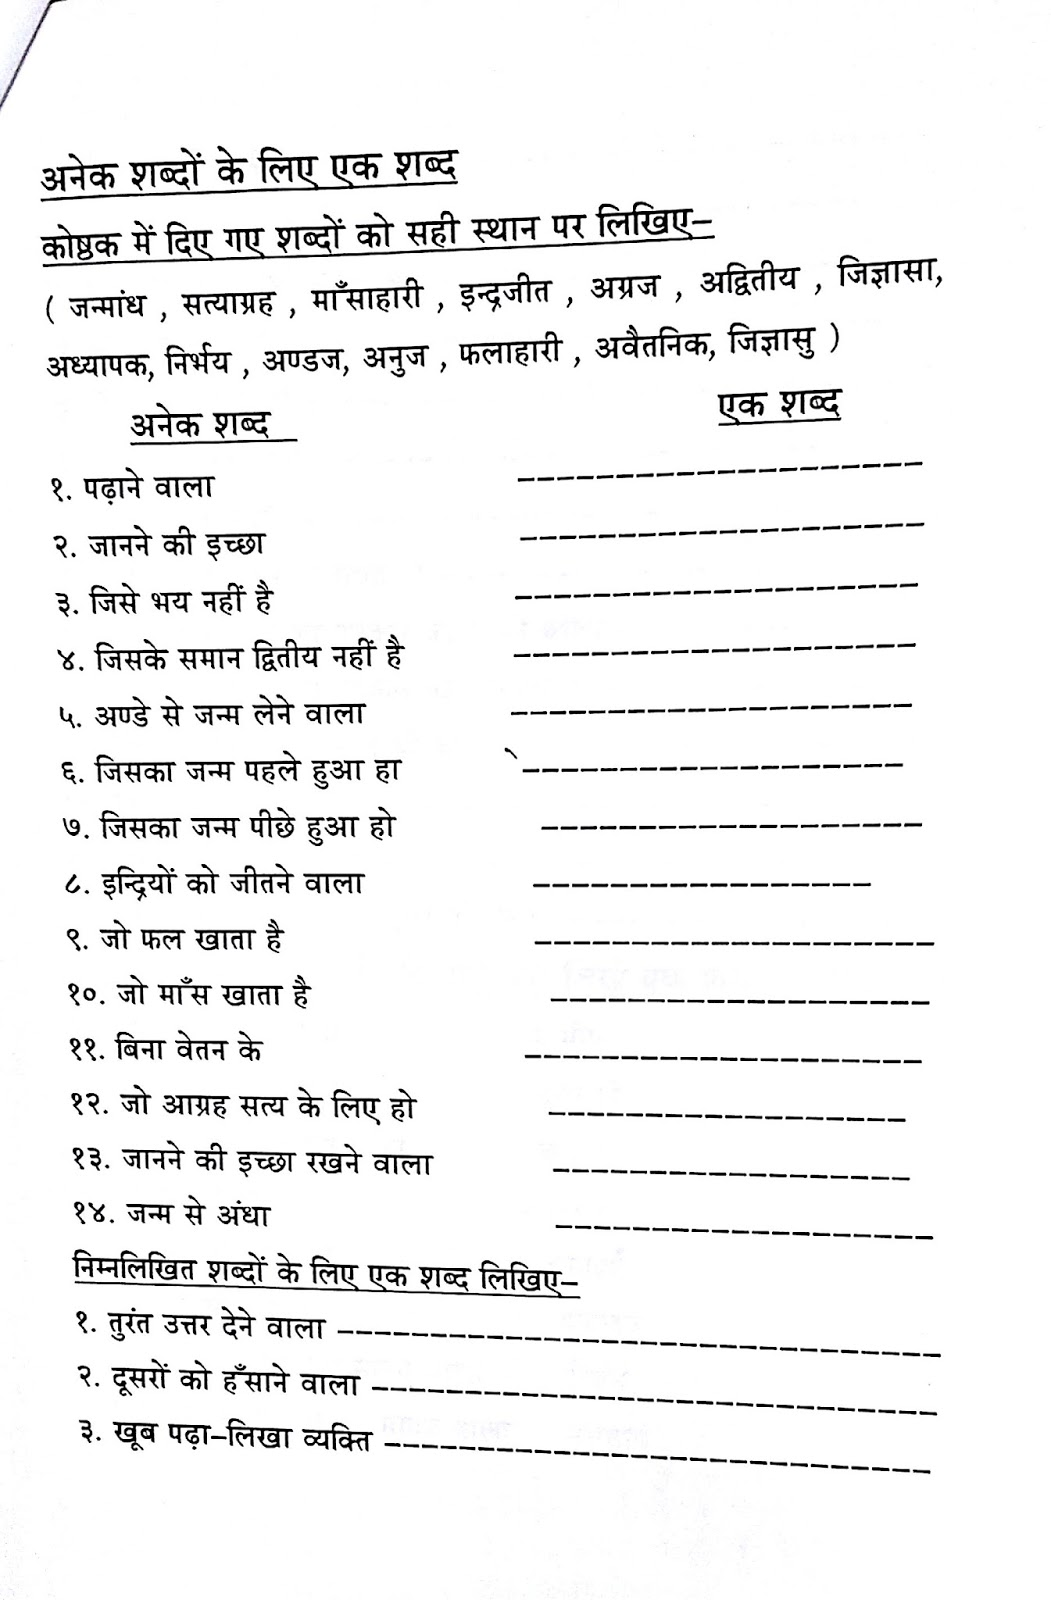 worksheet Cbse Hindi Worksheets For Class 2 workbooks hindi worksheets for class 2 on grammar free printable 28 kaal 2